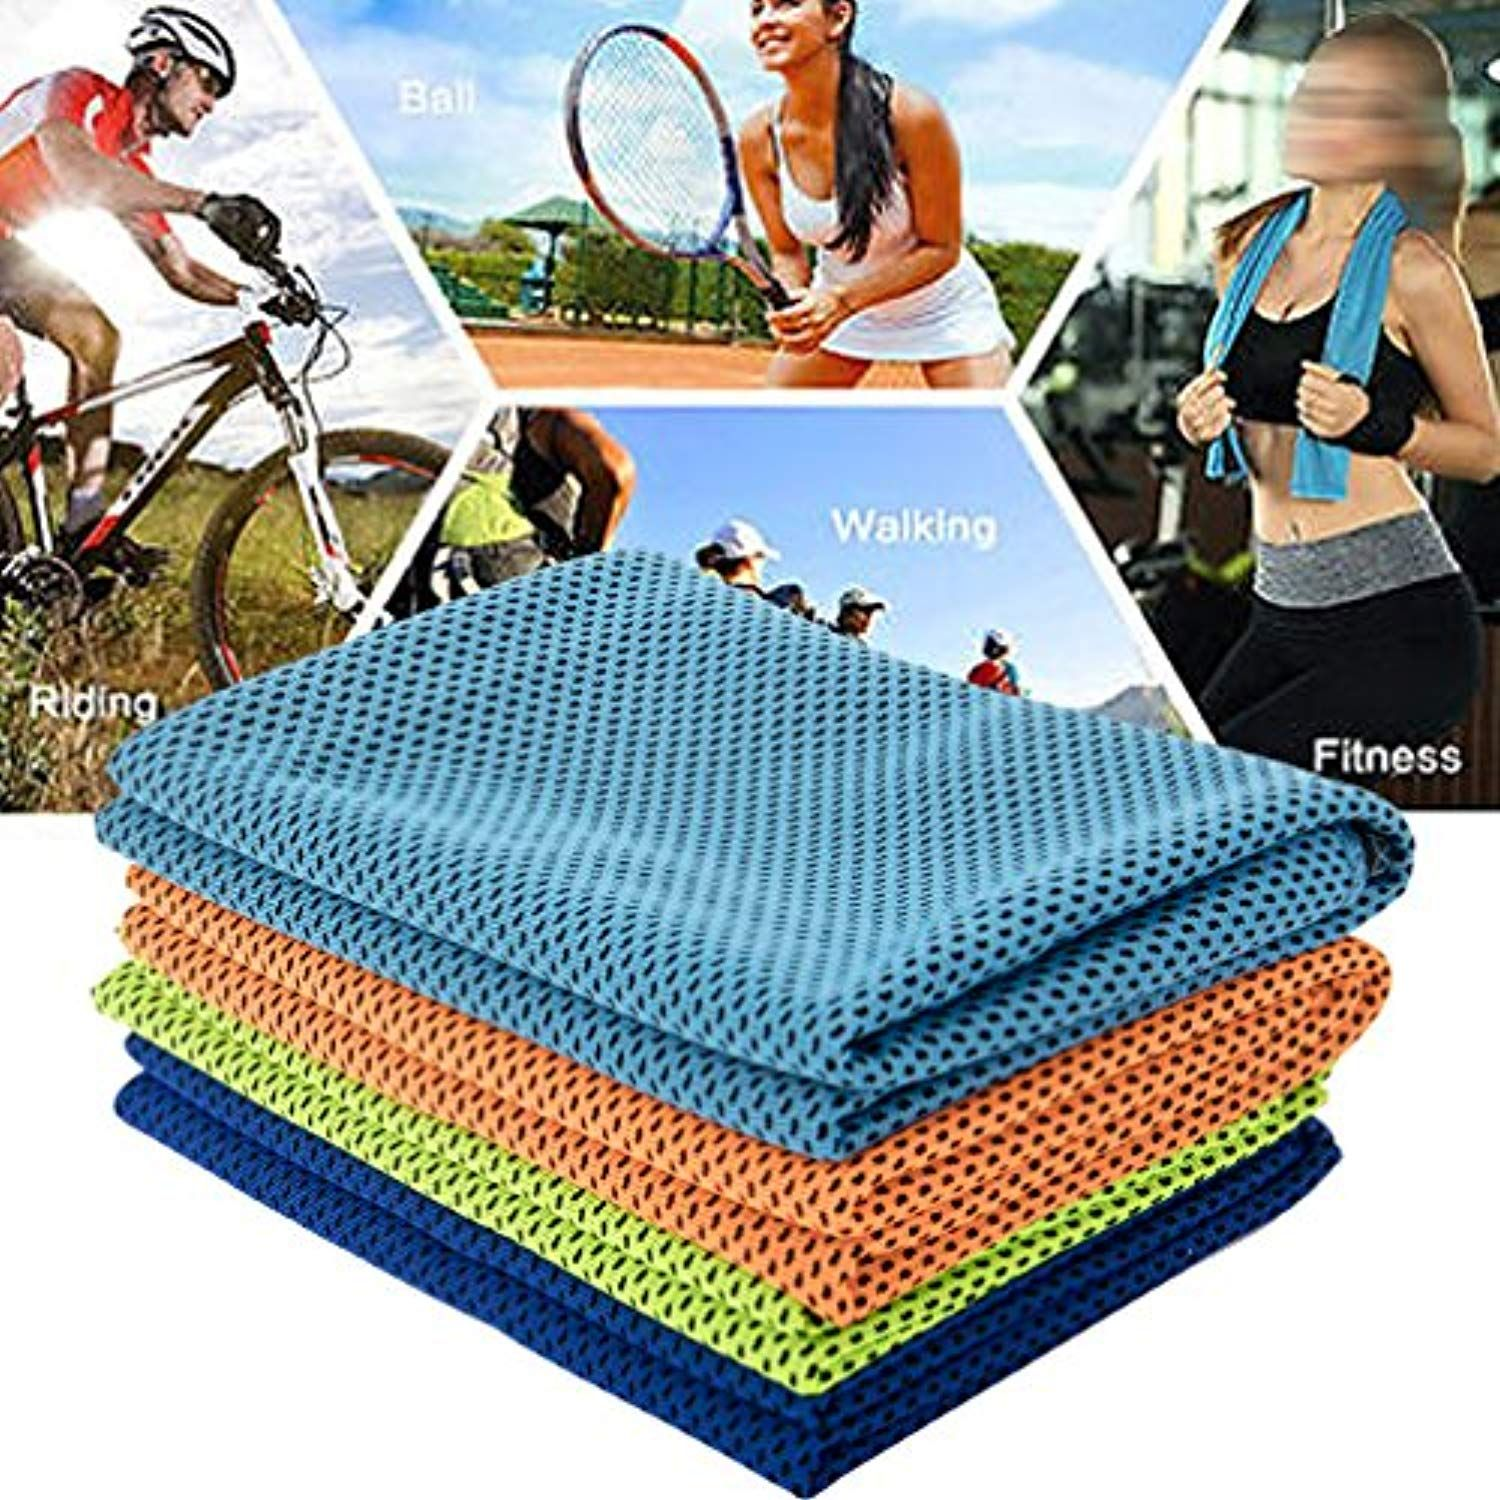 Cooling Towel For Instant Relief Cool Bowling Fitness Yoga